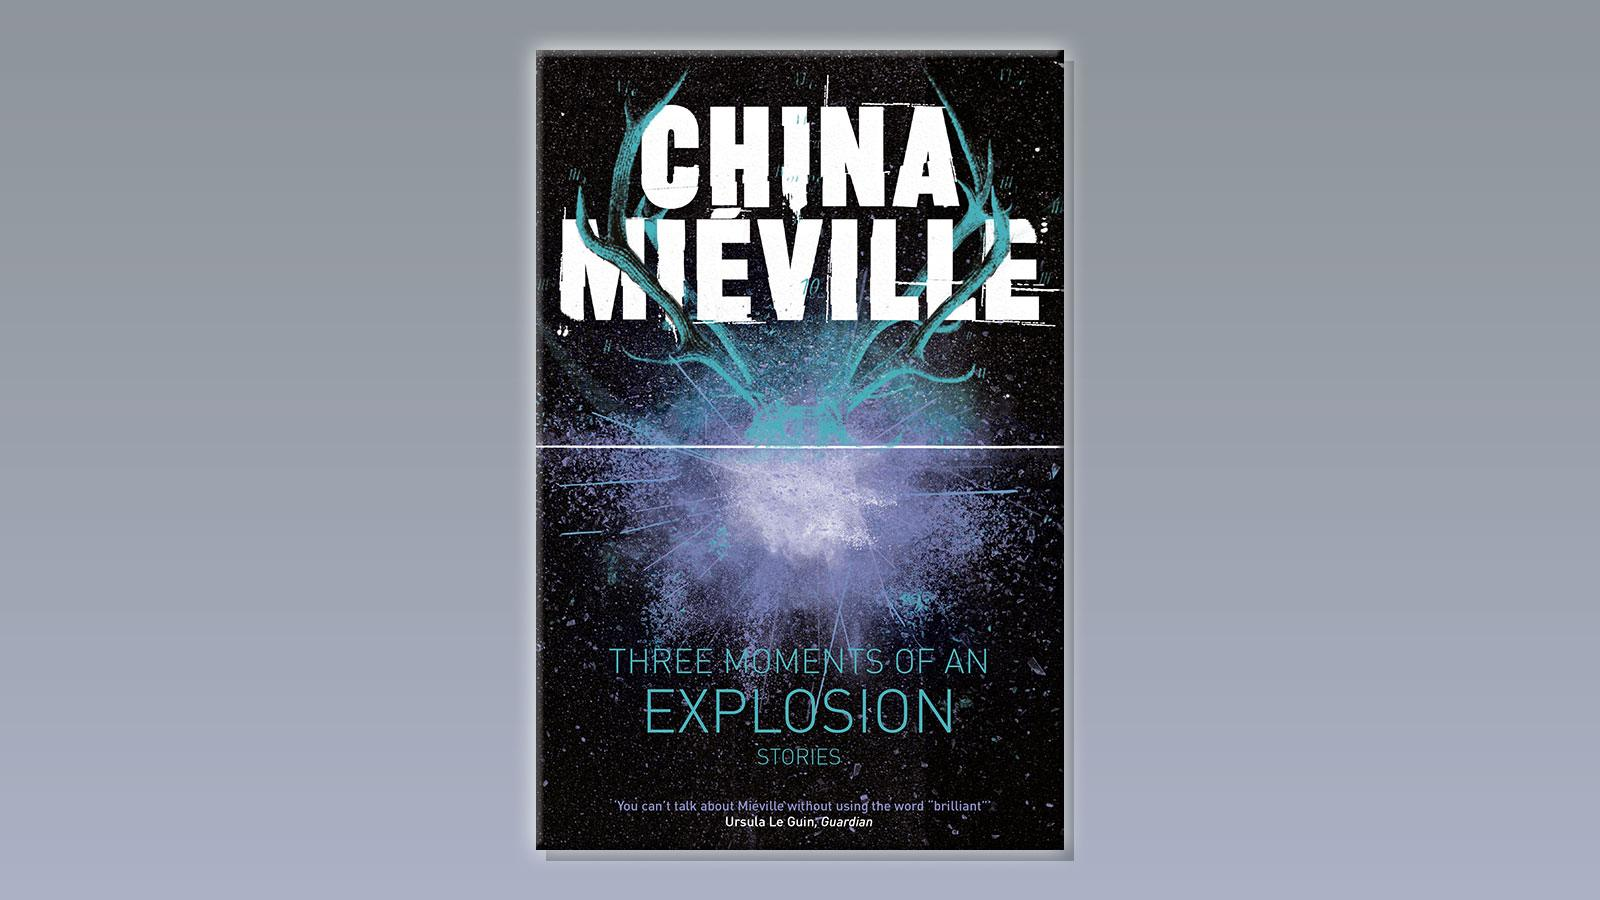 Three Moments of an Explosion by China Mieville on a pale grey background.